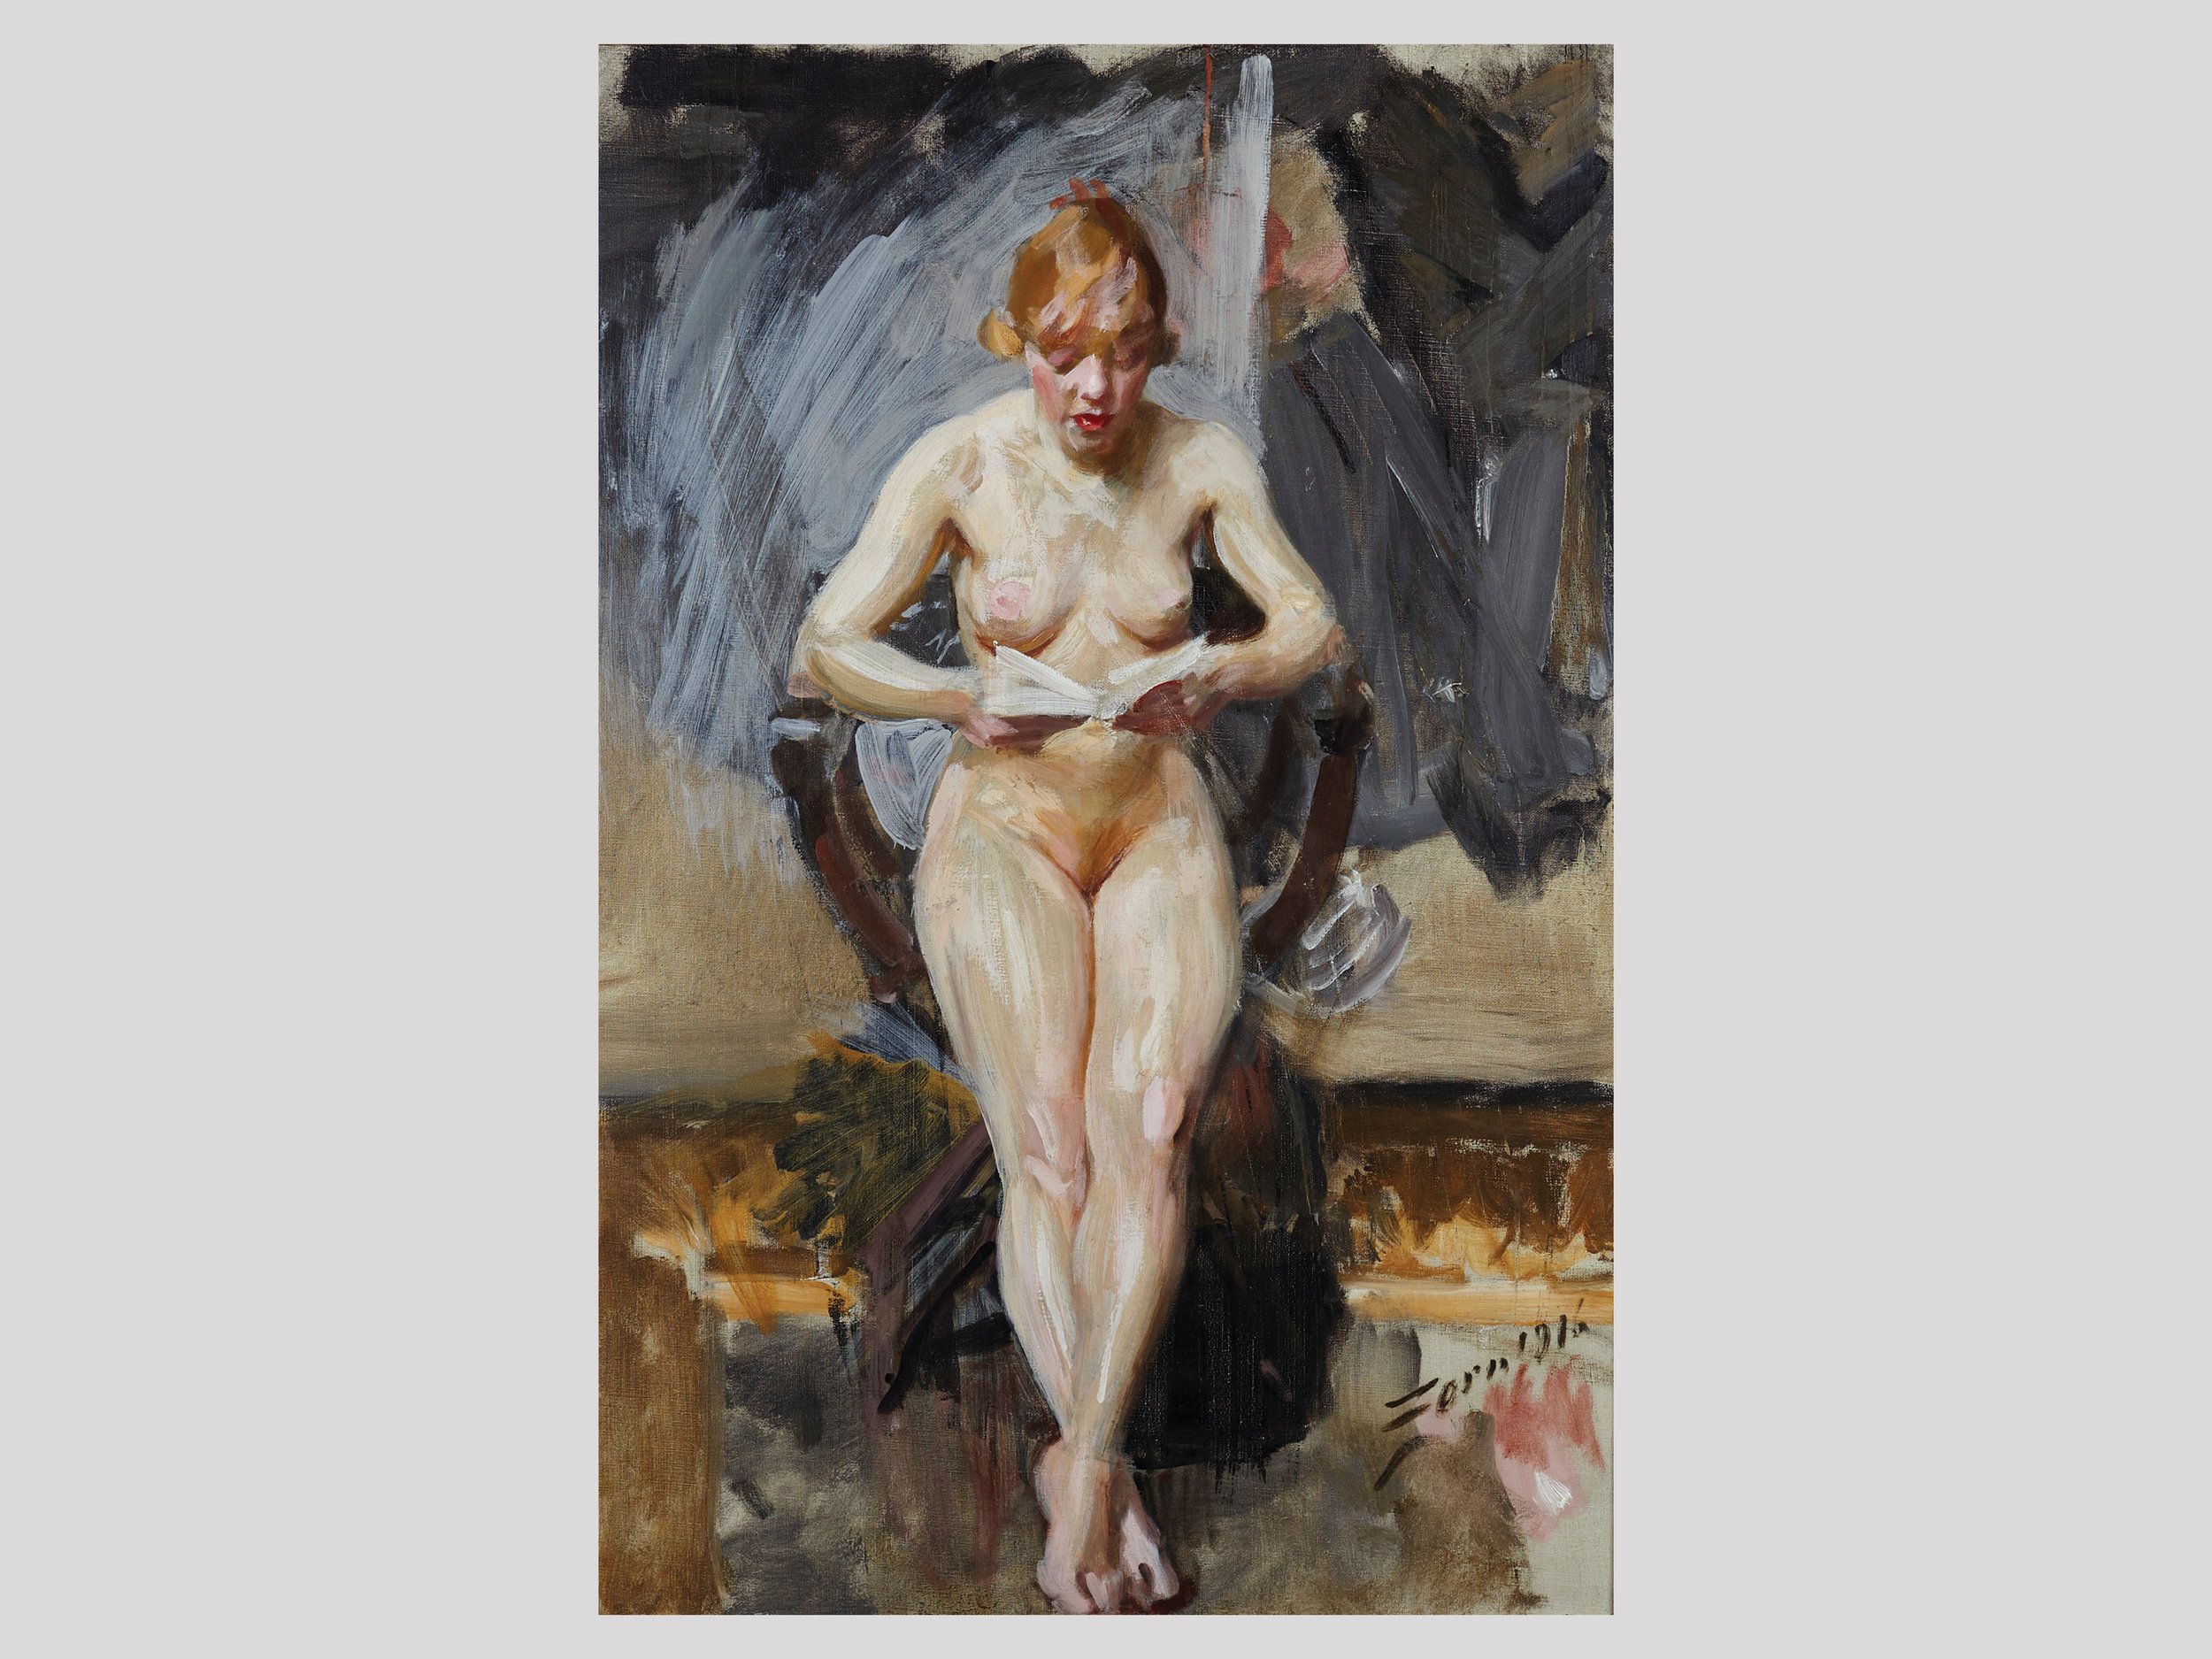 """Anders Zorn   Läsande modell  1916 Oil on canvas 82,5 x 54,5 cm  """"What had happened if Anders Zorn would have lived longer? This strikes me when I see this unusual work. To paint naked girls in Mora might not be the unusual, but the way he uses contrasts in surface and material. Wow! Her skin pops out against the stormy background. He's definitely closer to Lucien Freud than to his contemporaries.""""   Available"""